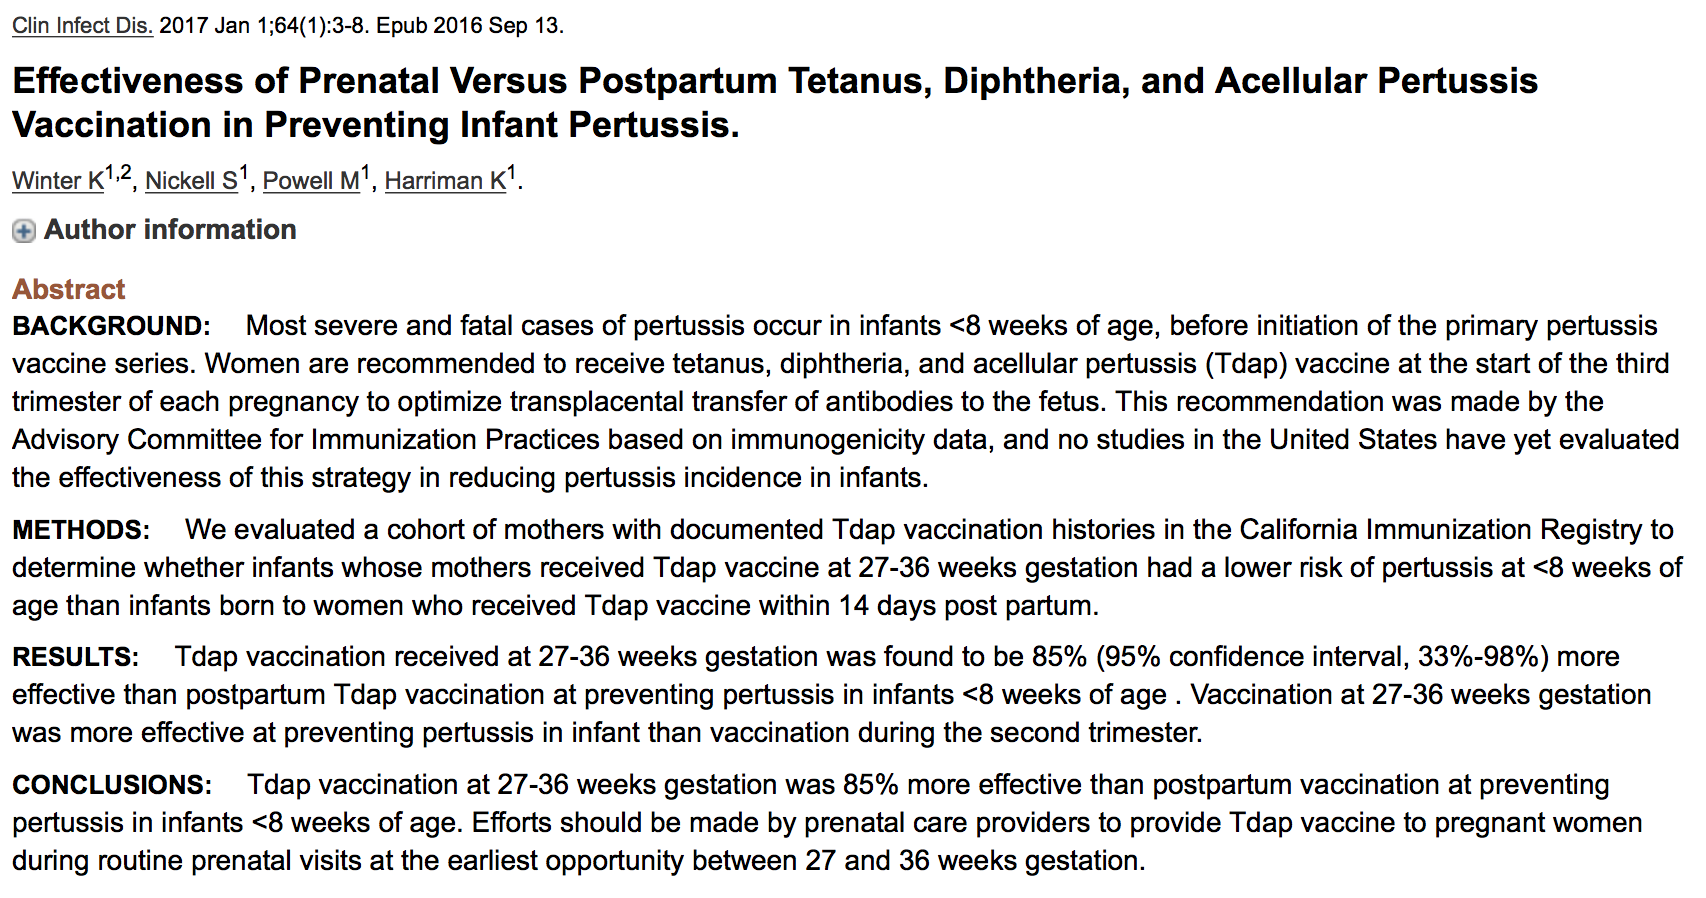 Effectiveness of Prenatal Versus Postpartum Tetanus, Diphtheria, and Acellular Pertussis Vaccination in Preventing Infant Pertussis